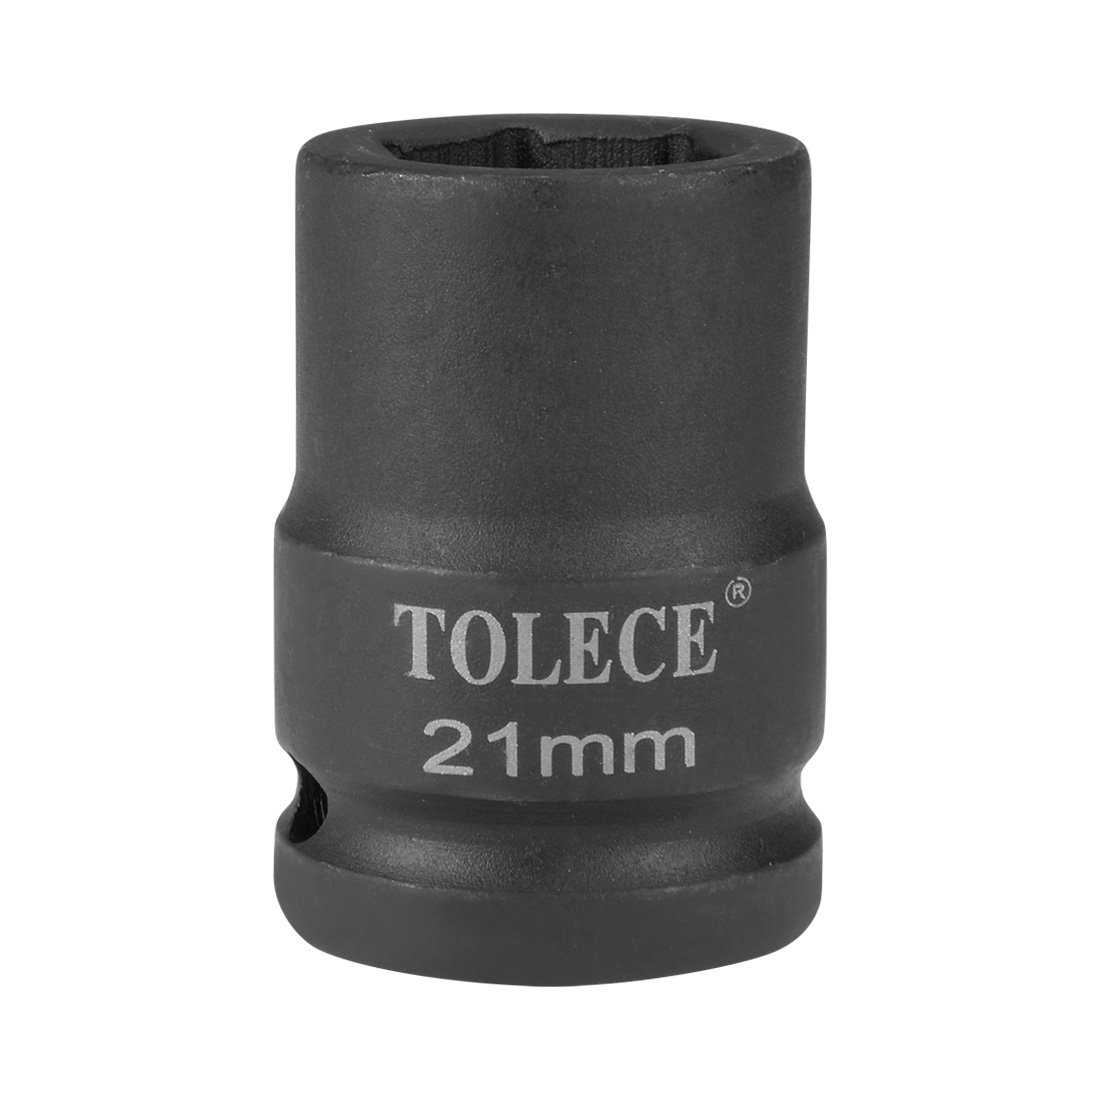 uxcell 3/4-inch Drive 21mm 6-Point Shallow Impact Socket, Cr-Mo Steel